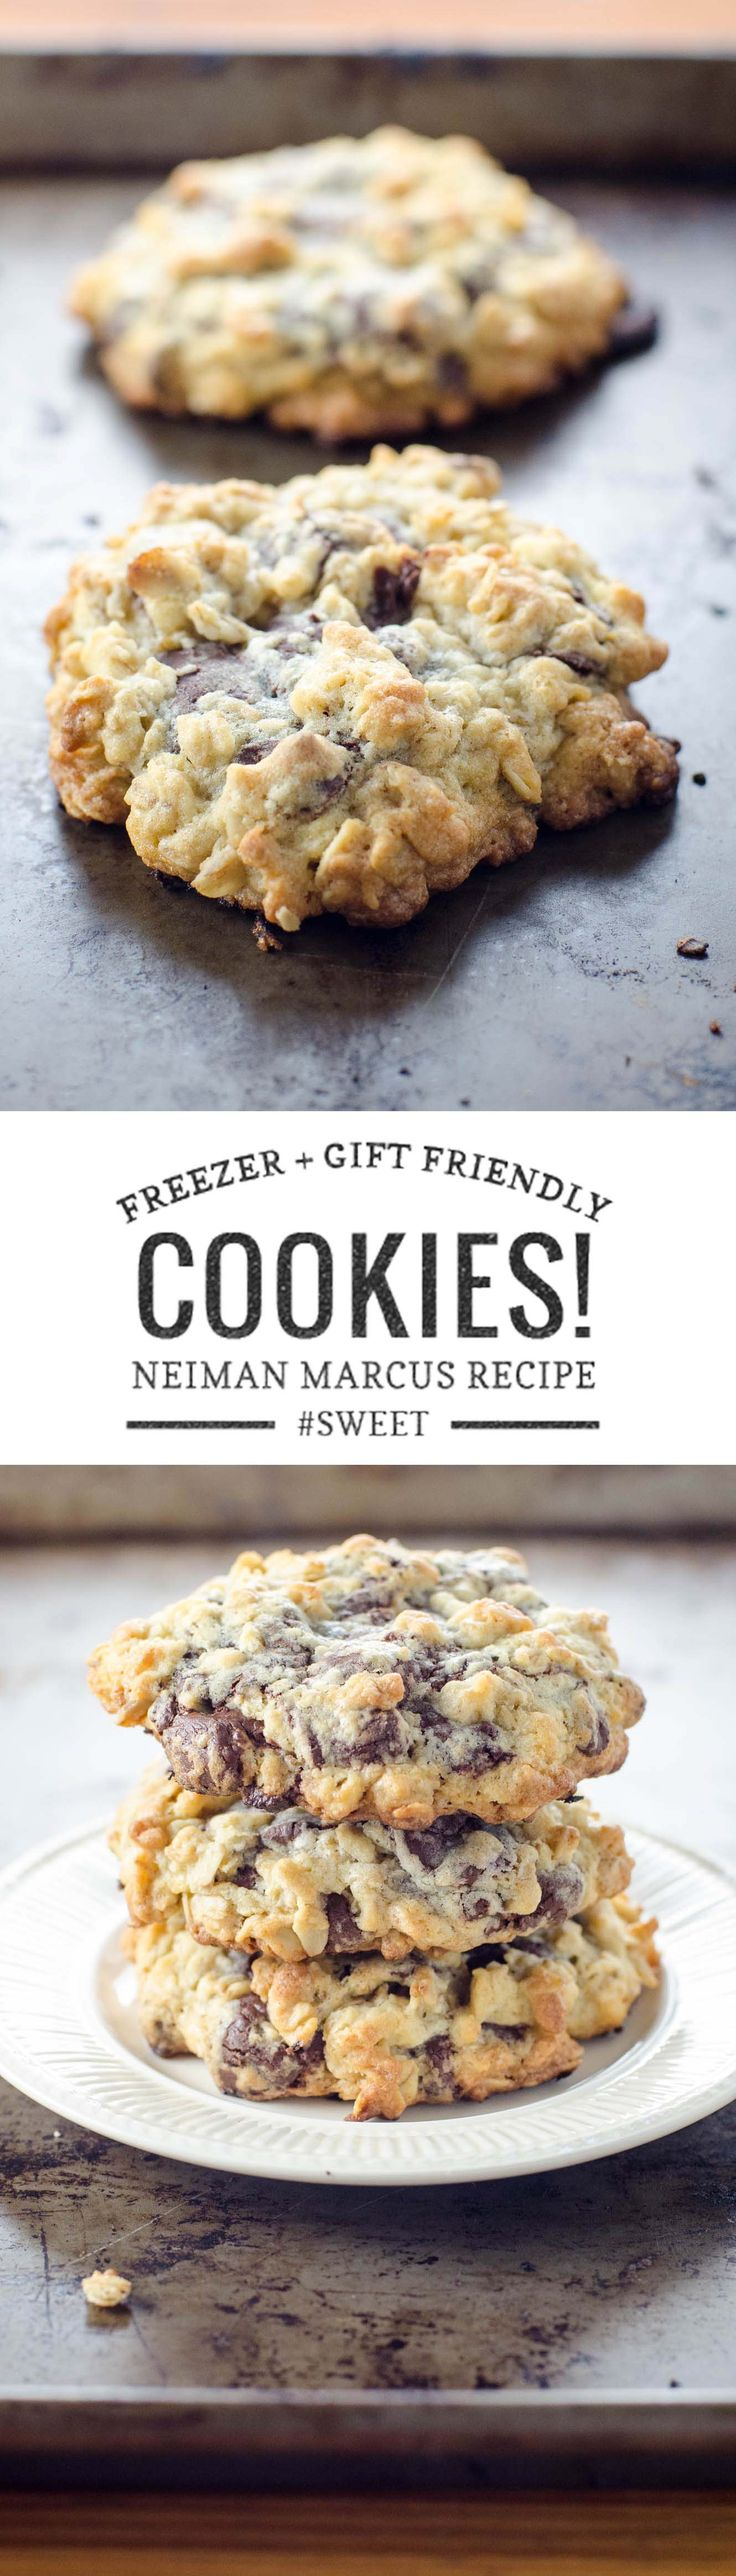 The Neiman Marcus cookie recipe of your dreams is easy to freeze for later and/or share as the world's best hostess gift. via @umamigirl